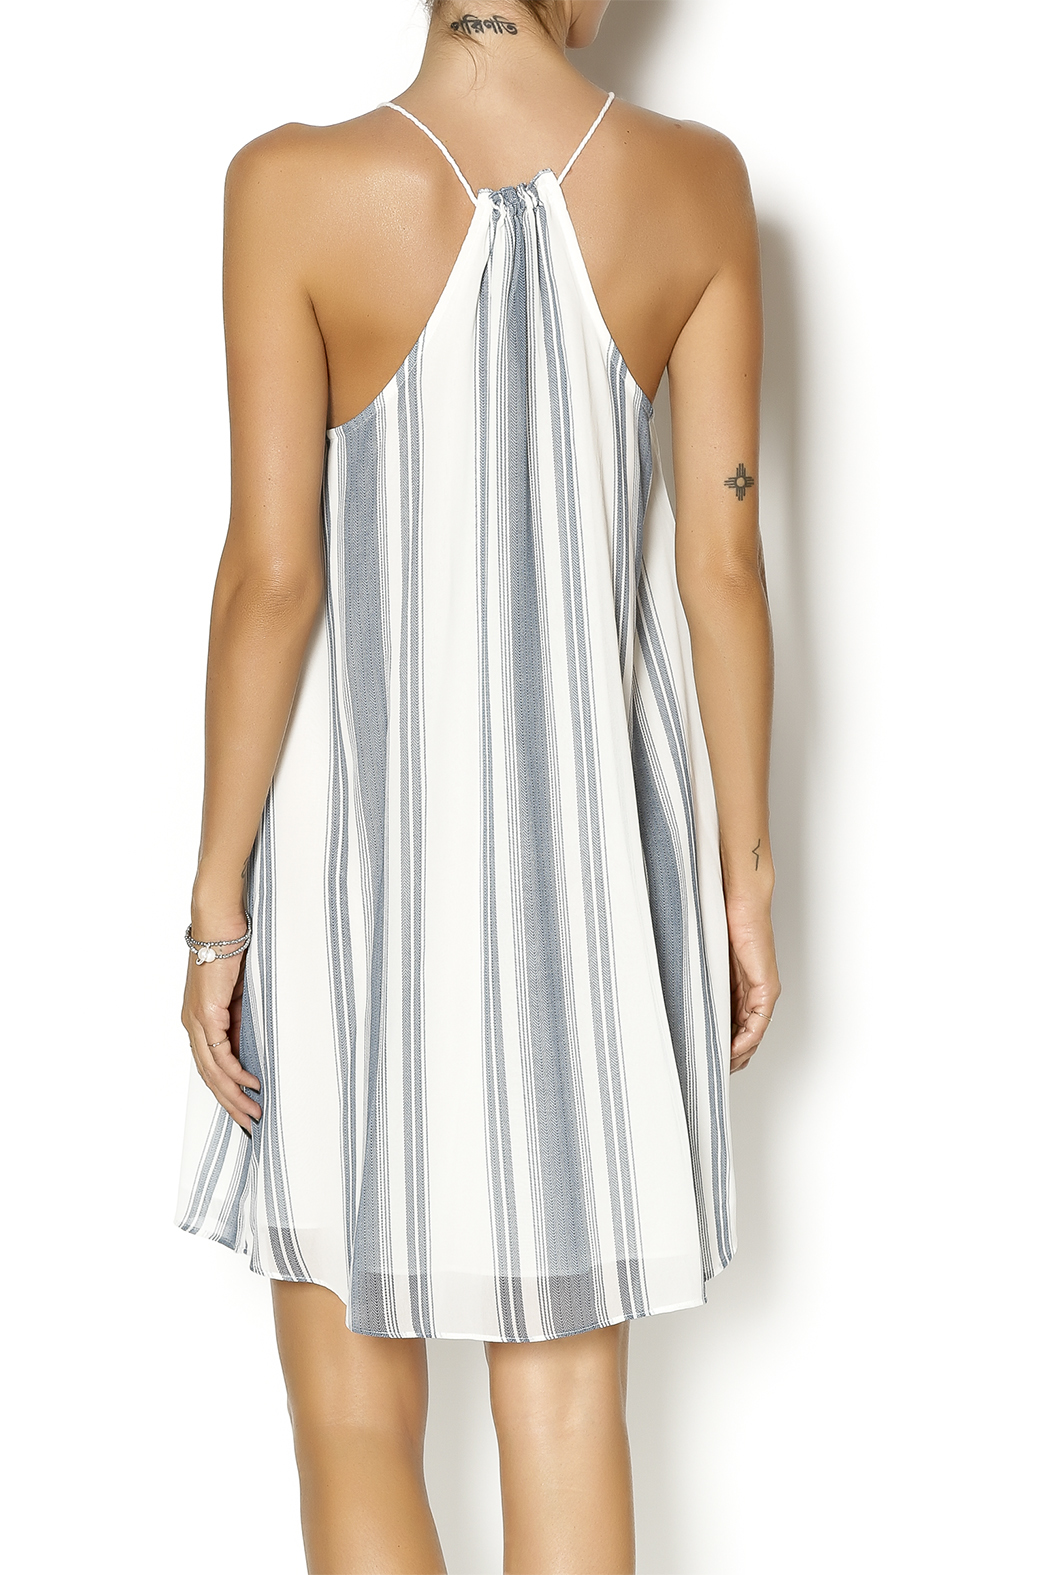 Gentle Fawn Tidal Dress - Back Cropped Image